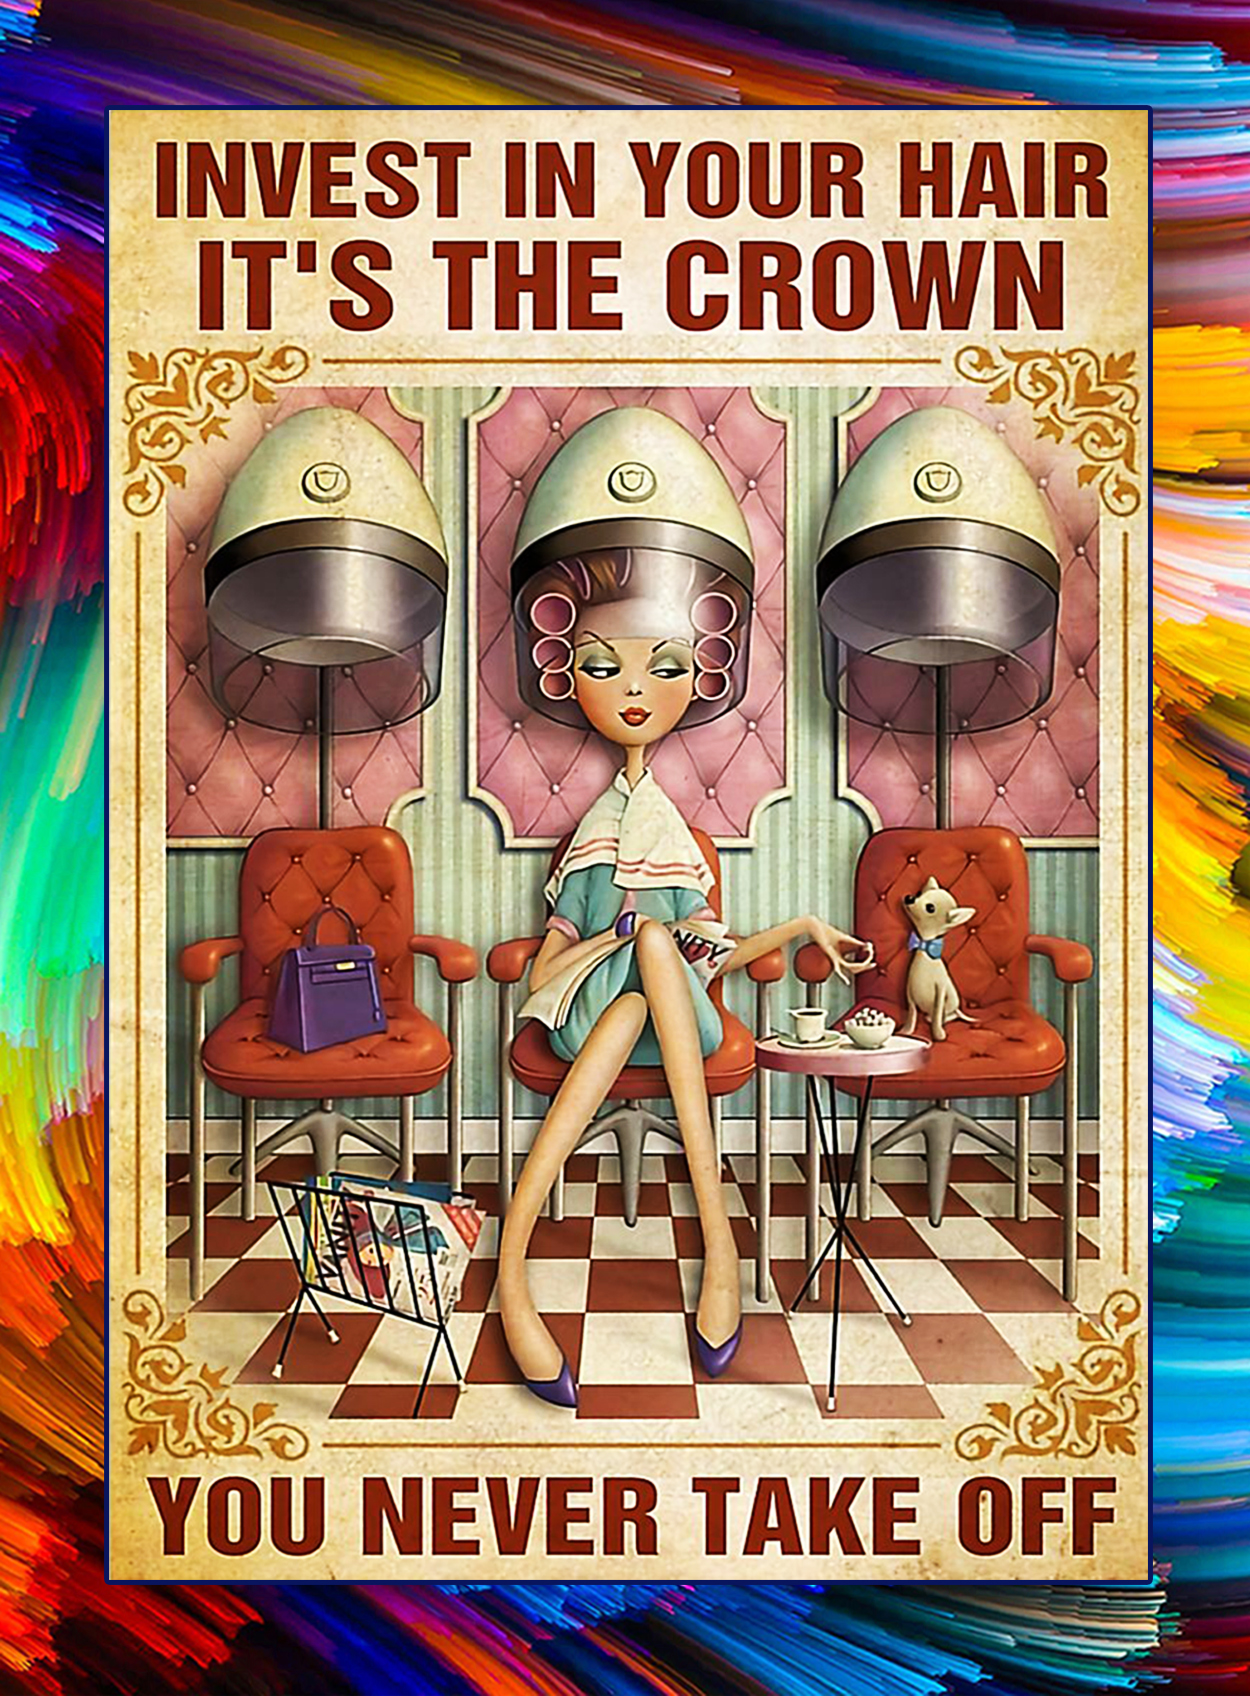 Hairdresser Invest in your hair it's the crown you never take off poster - A2